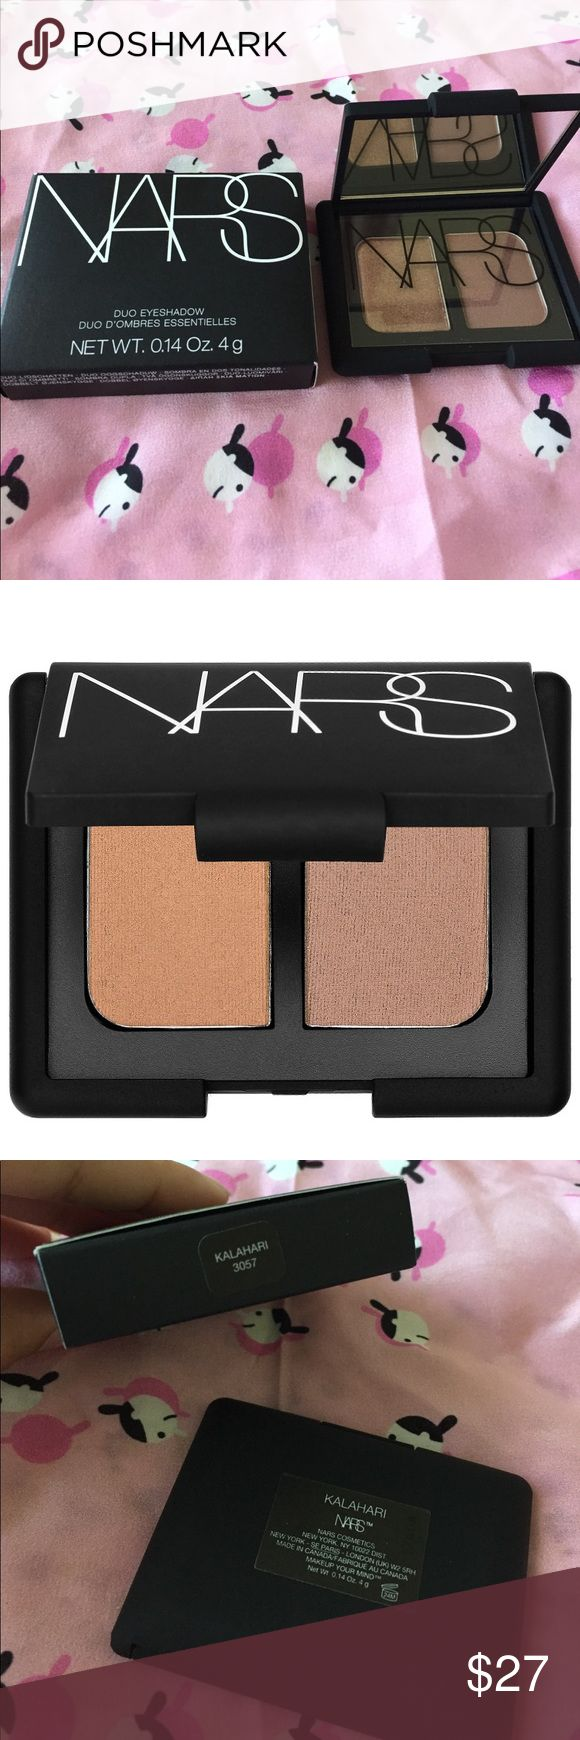 NEW NARS Eyeshadow Duo in Kalahari New in box and authentic. In the shade kalahari, a bronze pearl color and a milk chocolate color. Very pigmented and easy to blend and NARS packaging is also a plus. NARS Makeup Eyeshadow